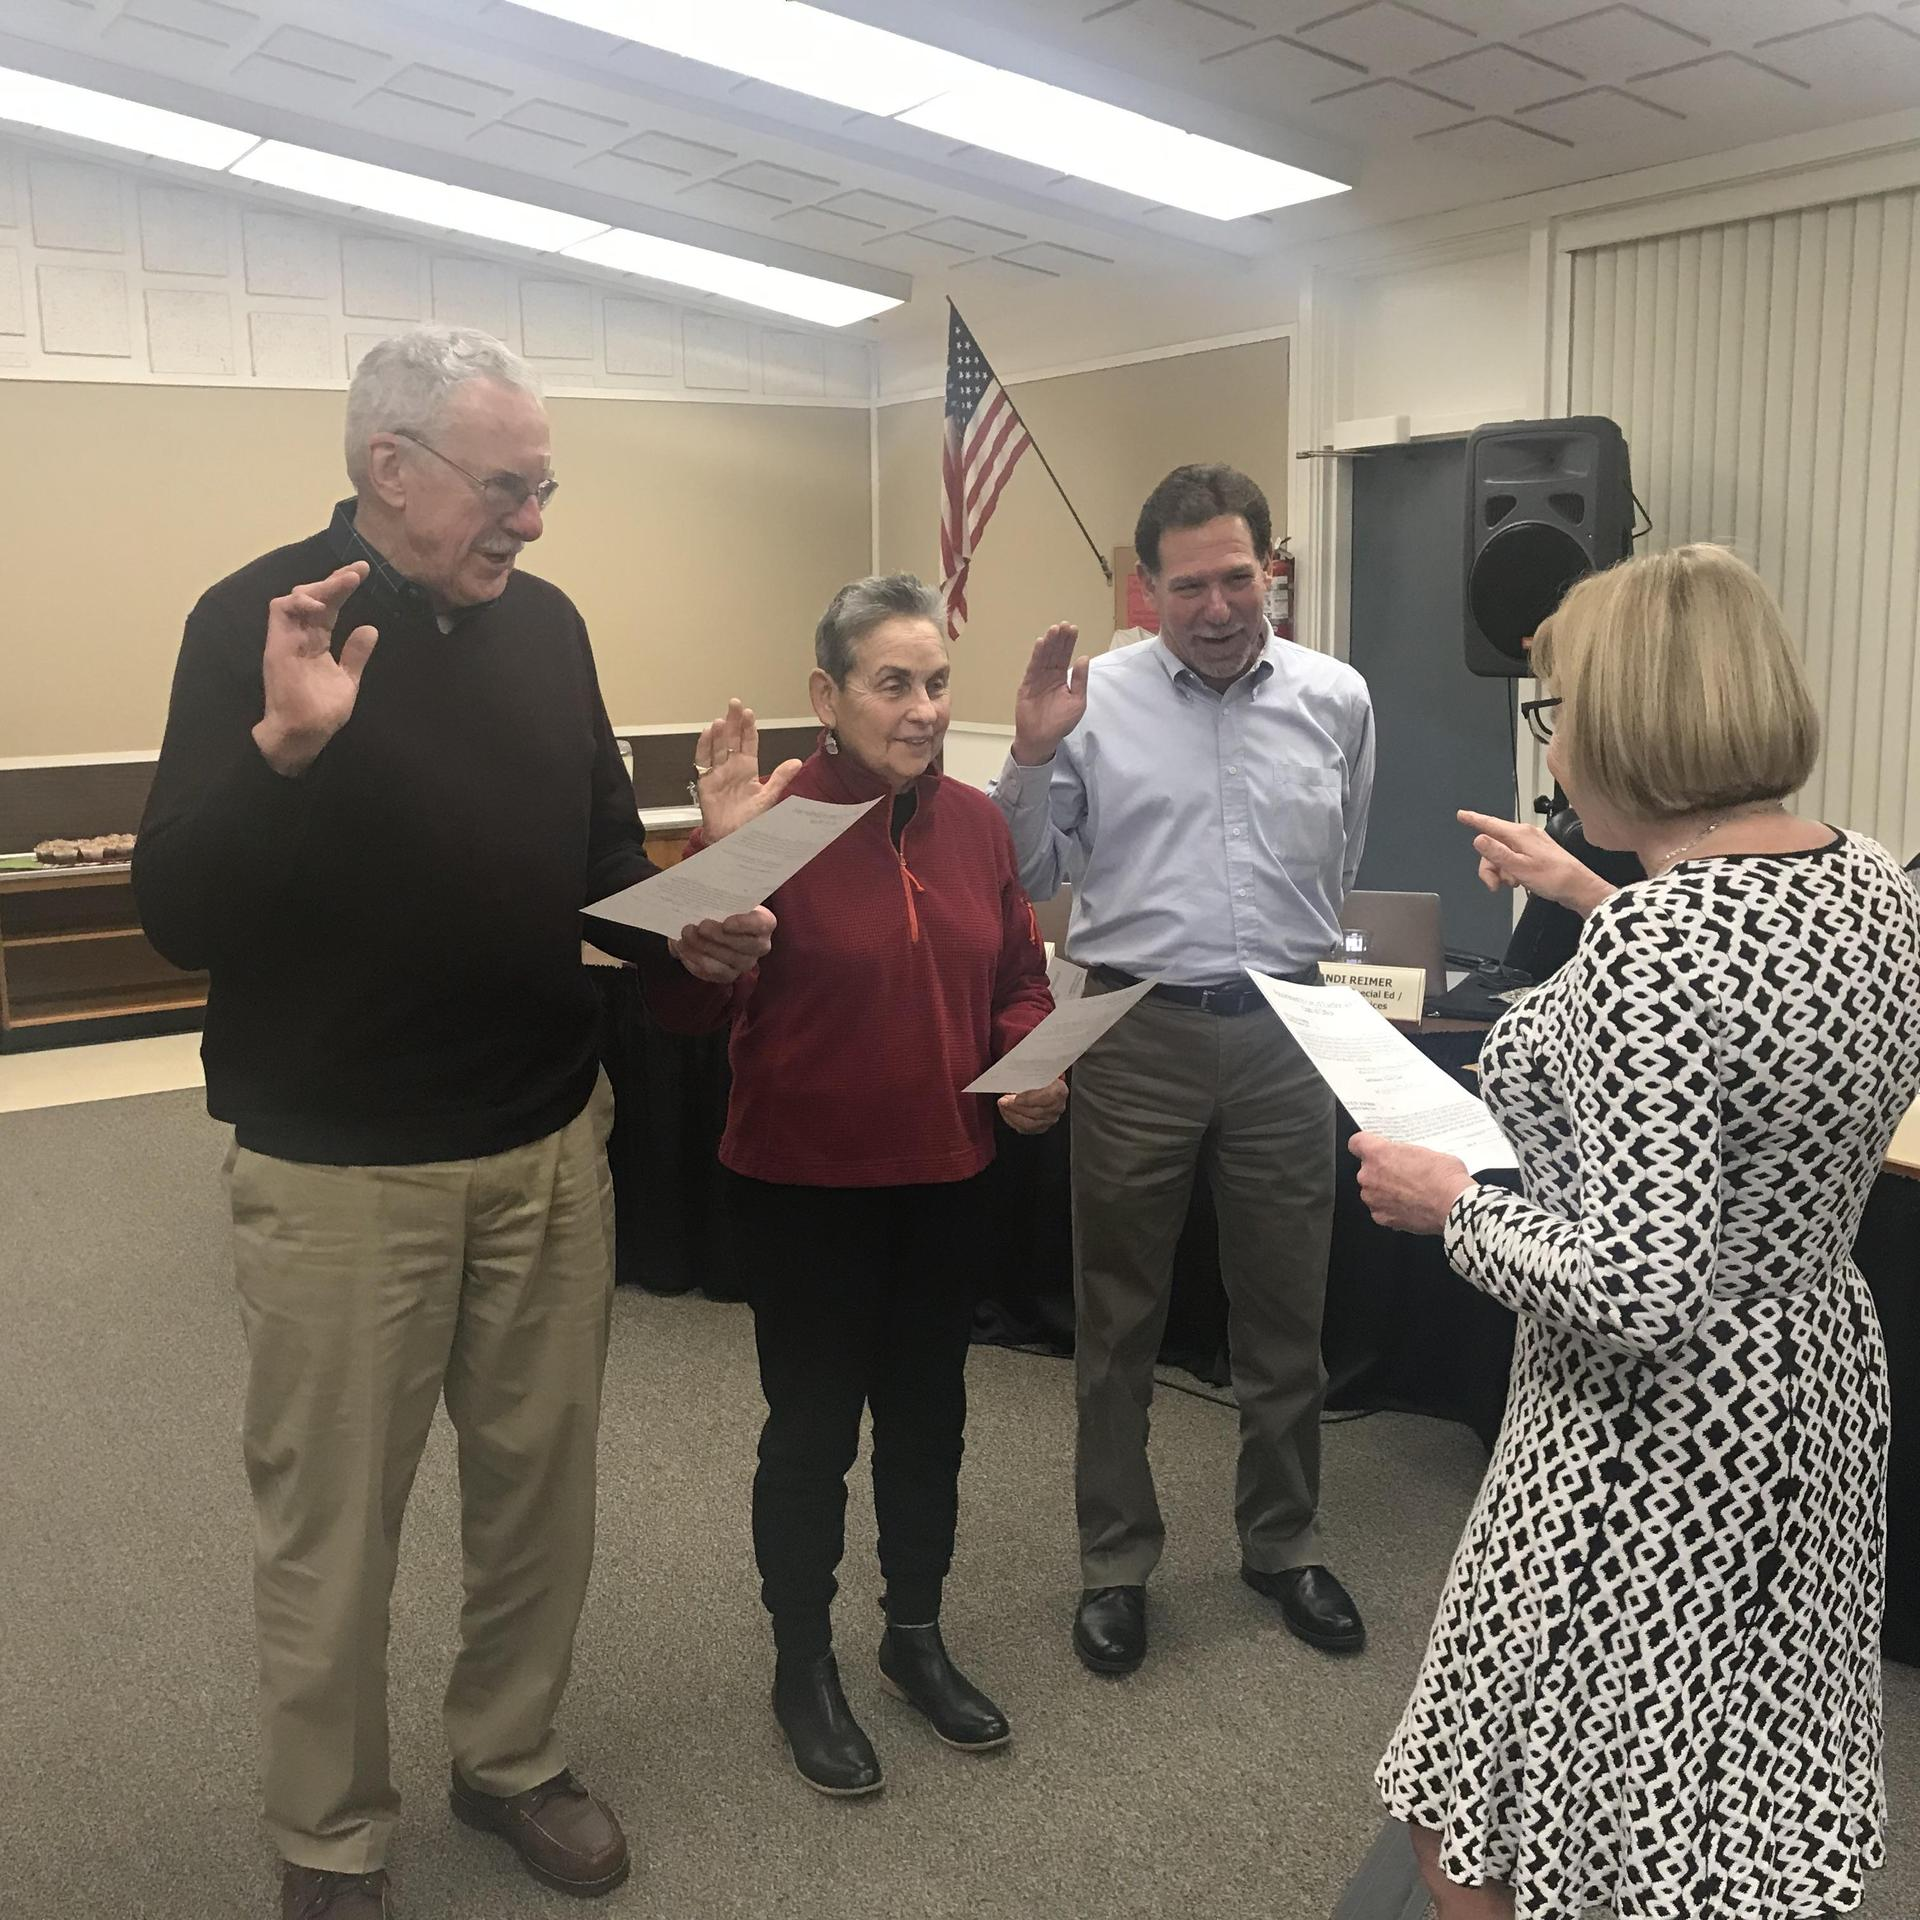 George Wylie, Gail Levine, Mark Becker take their oath of office